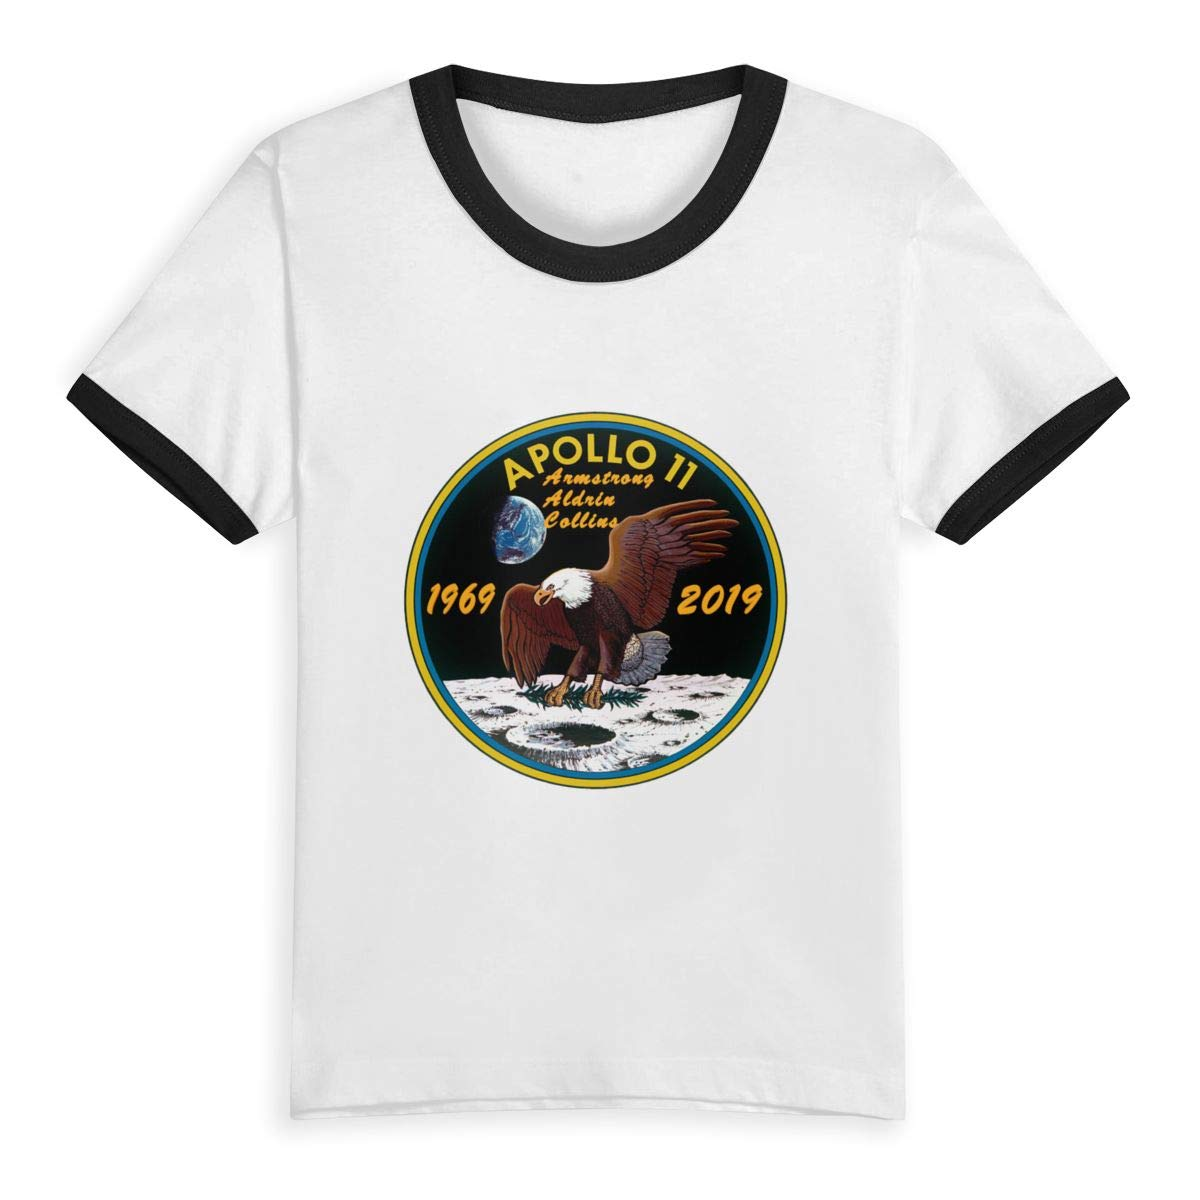 Apollo 11 50th Anniversary Logo Unisex Youths Short Sleeve T-Shirt Kids T-Shirt Tops